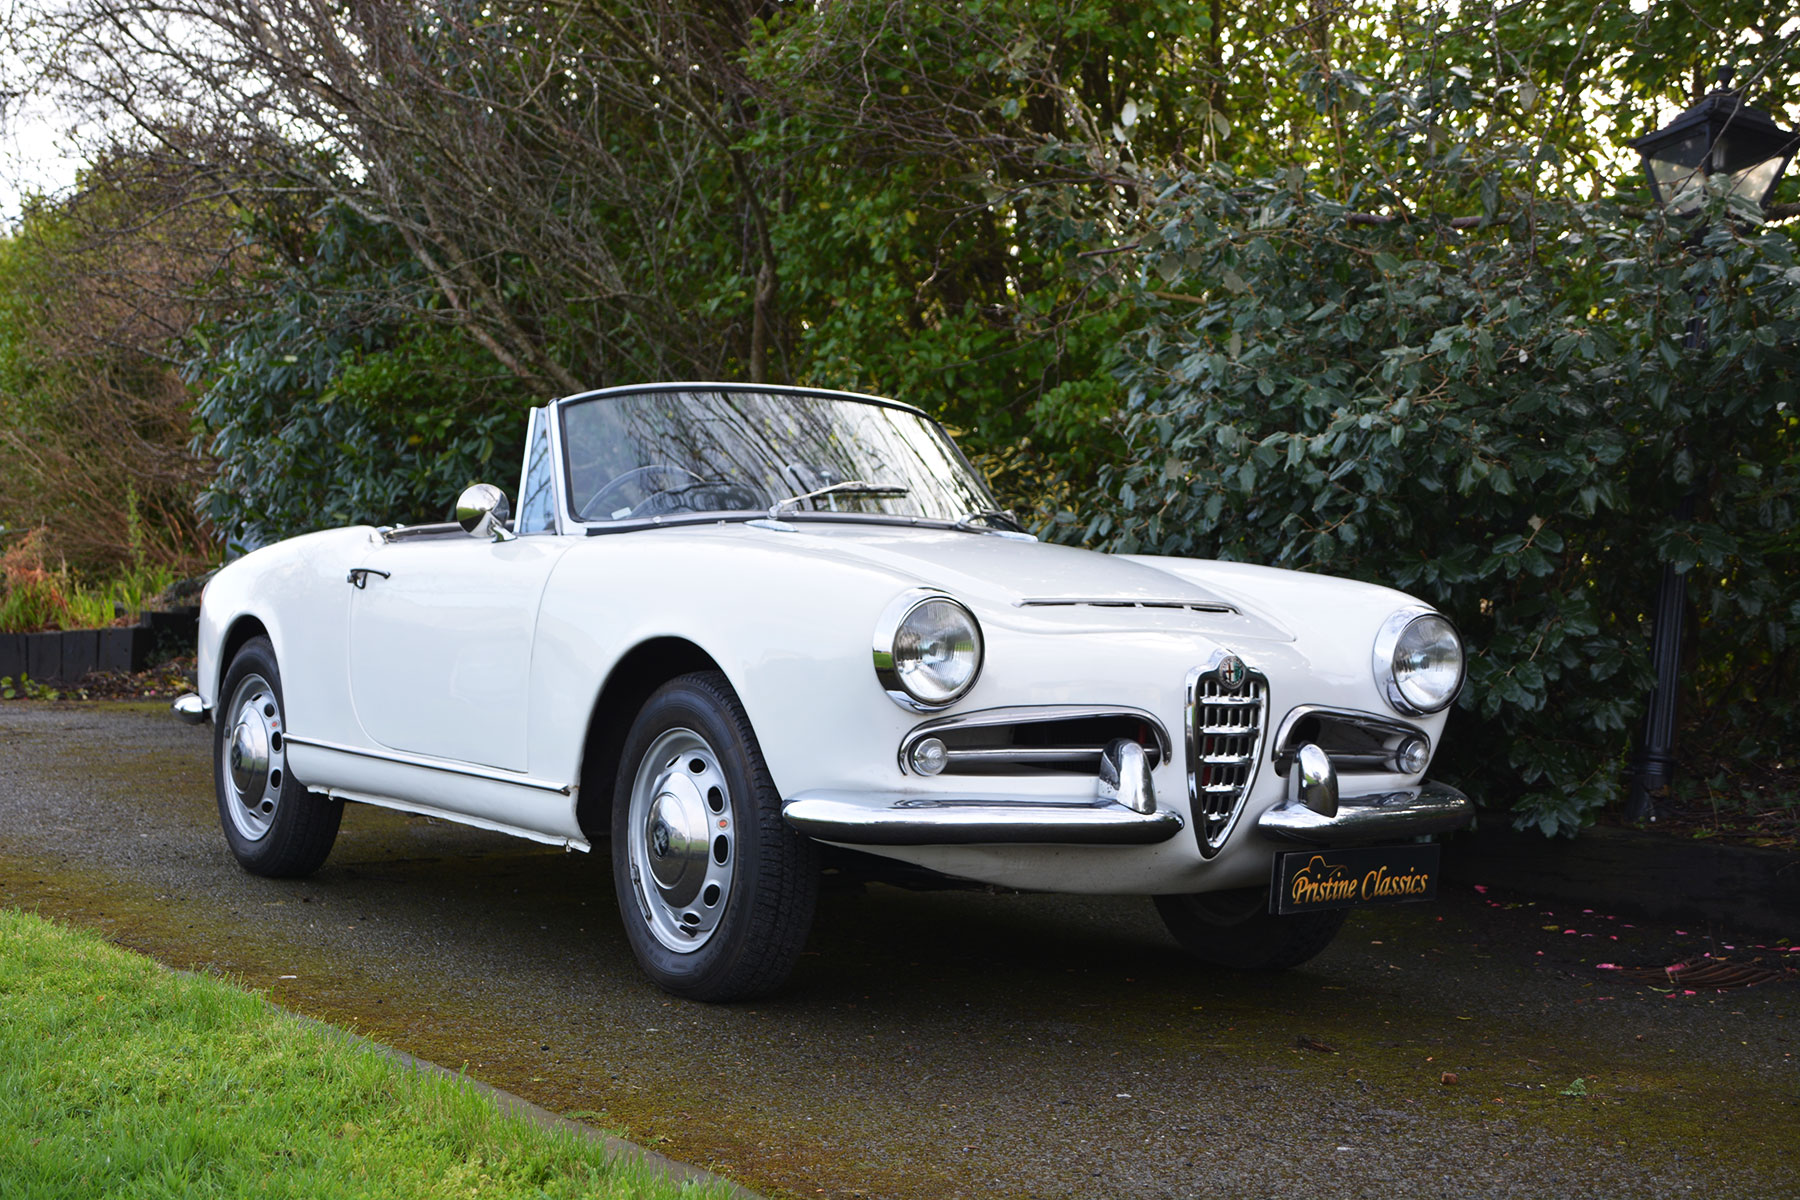 Alfa Romeo Giulia Spider Junior RHD (First year of Registration 1965) Pristine Classics